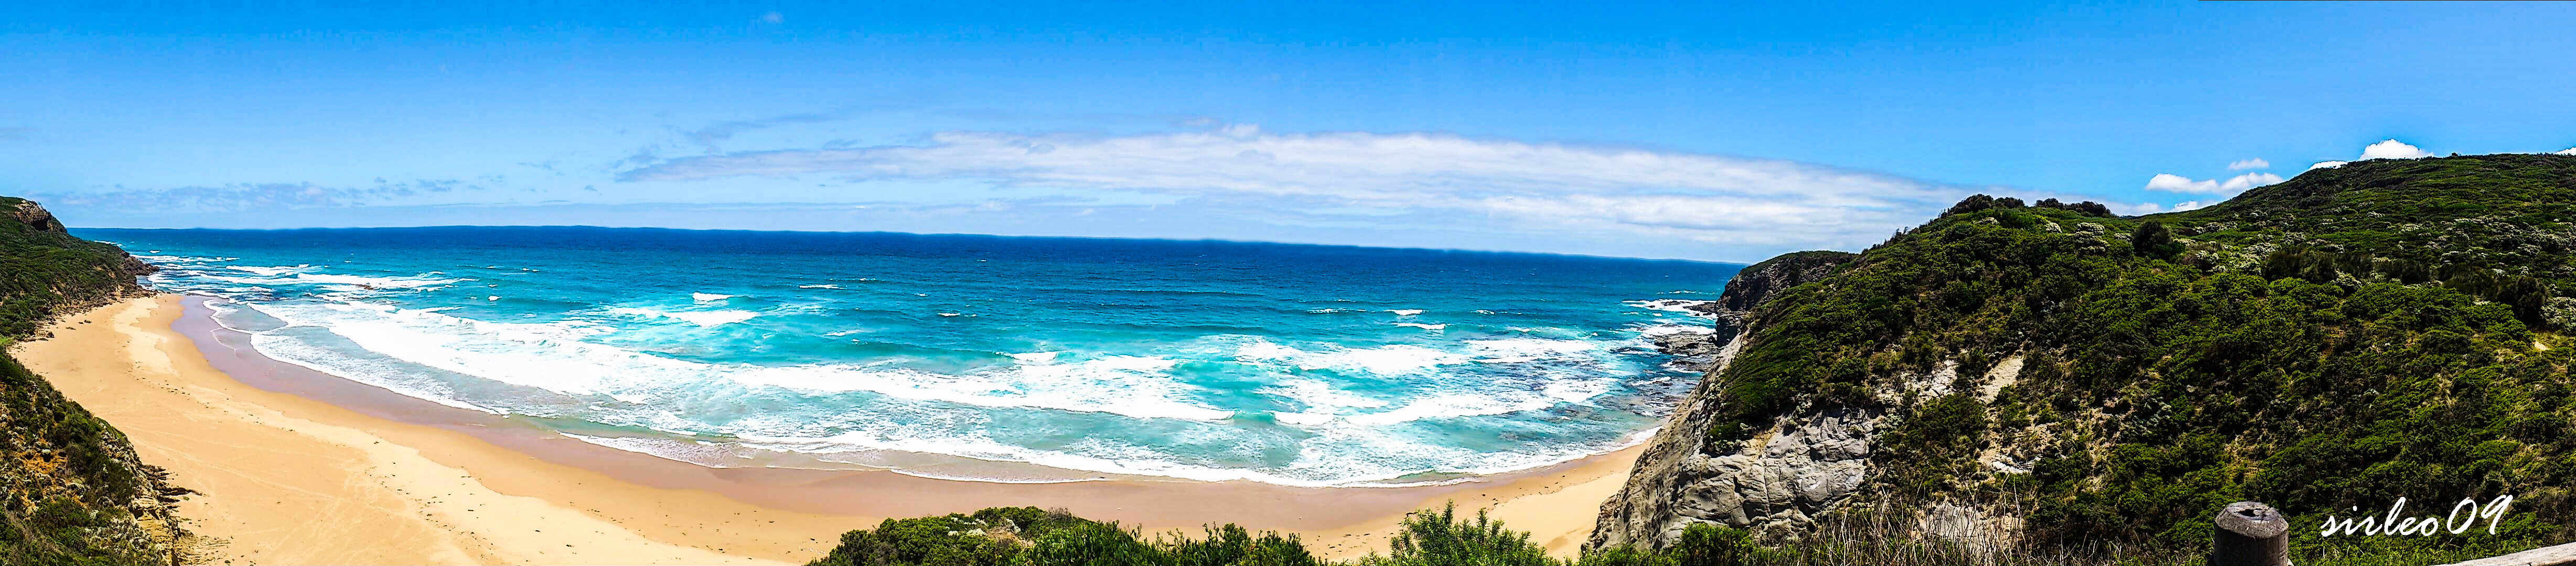 Melbourne - Beach Panorama by SirLeo09